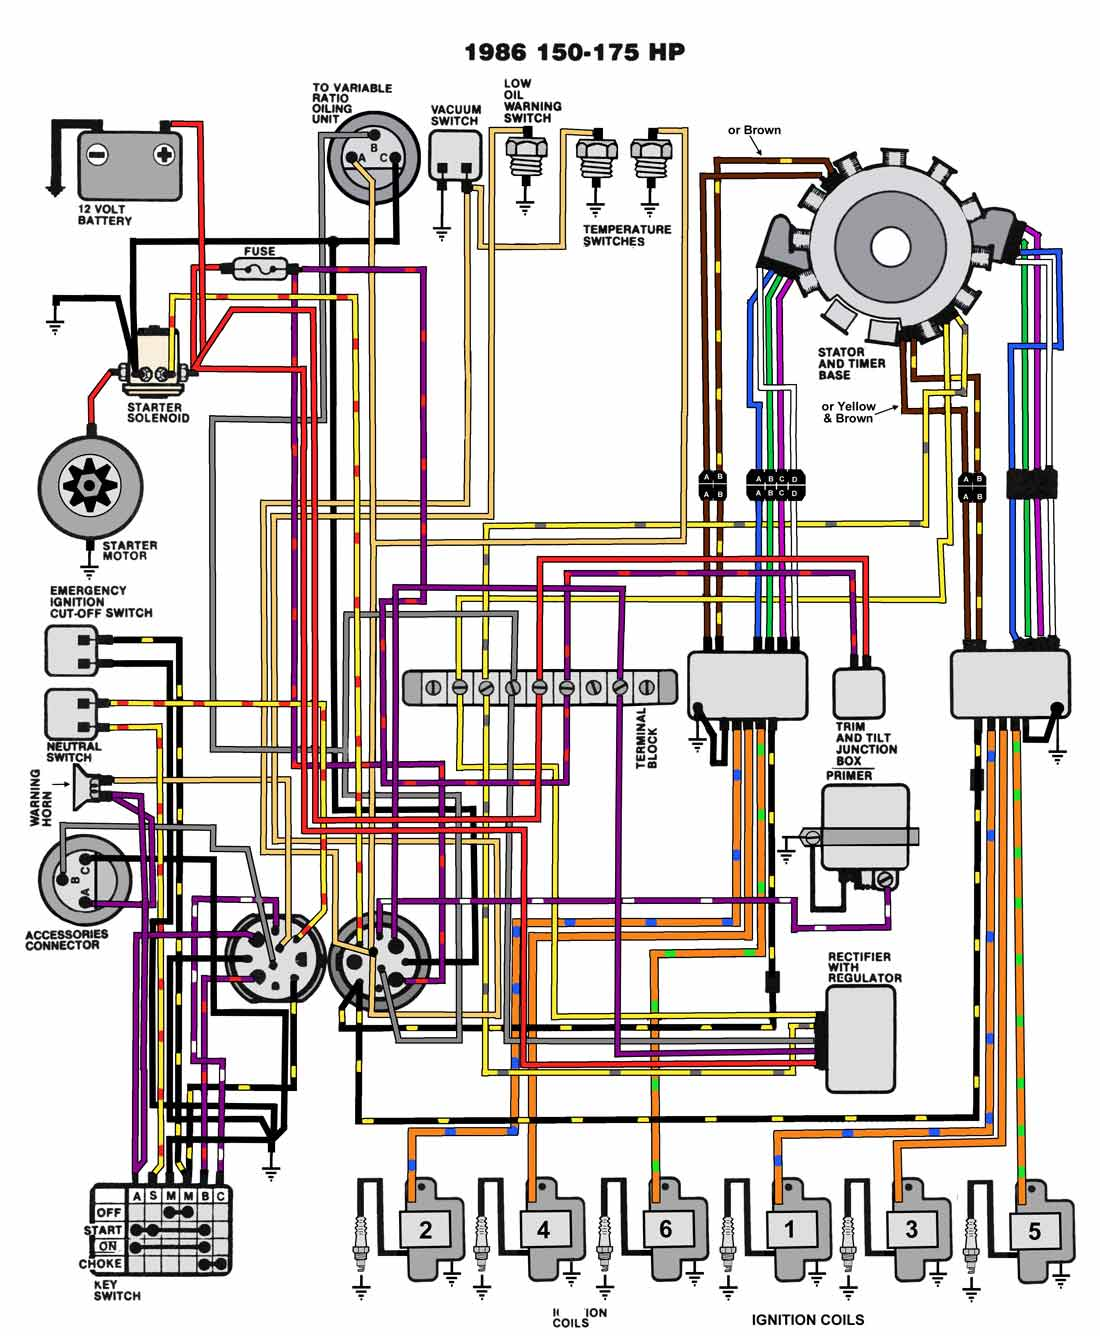 hight resolution of omc schematic diagrams wiring diagram blog omc outdrive diagram omc schematic diagrams